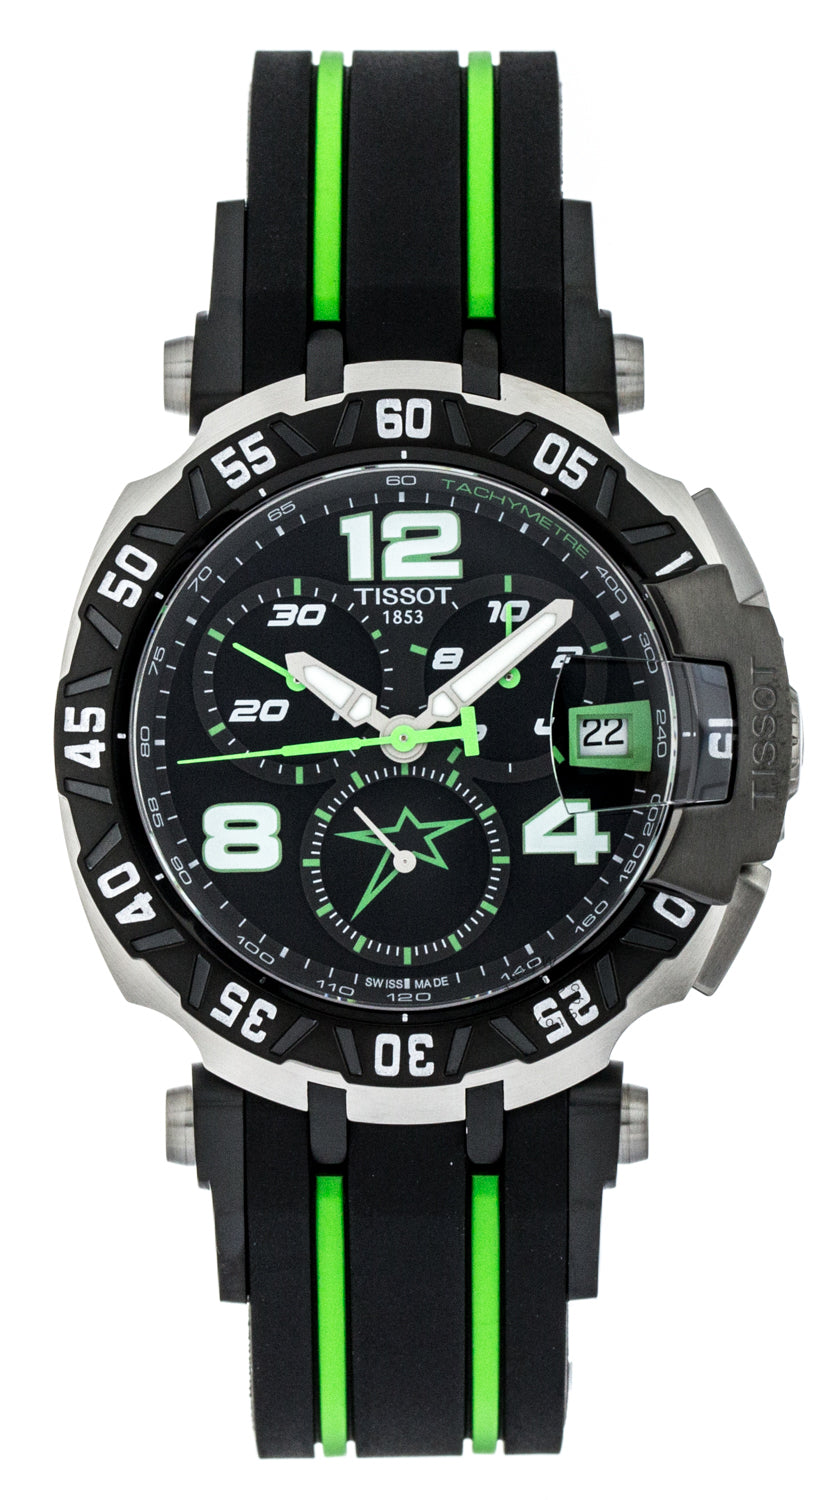 Tissot T-Race Chrono Nicky Hayden Ltd Ed 2015 Men Watch T0924172705701